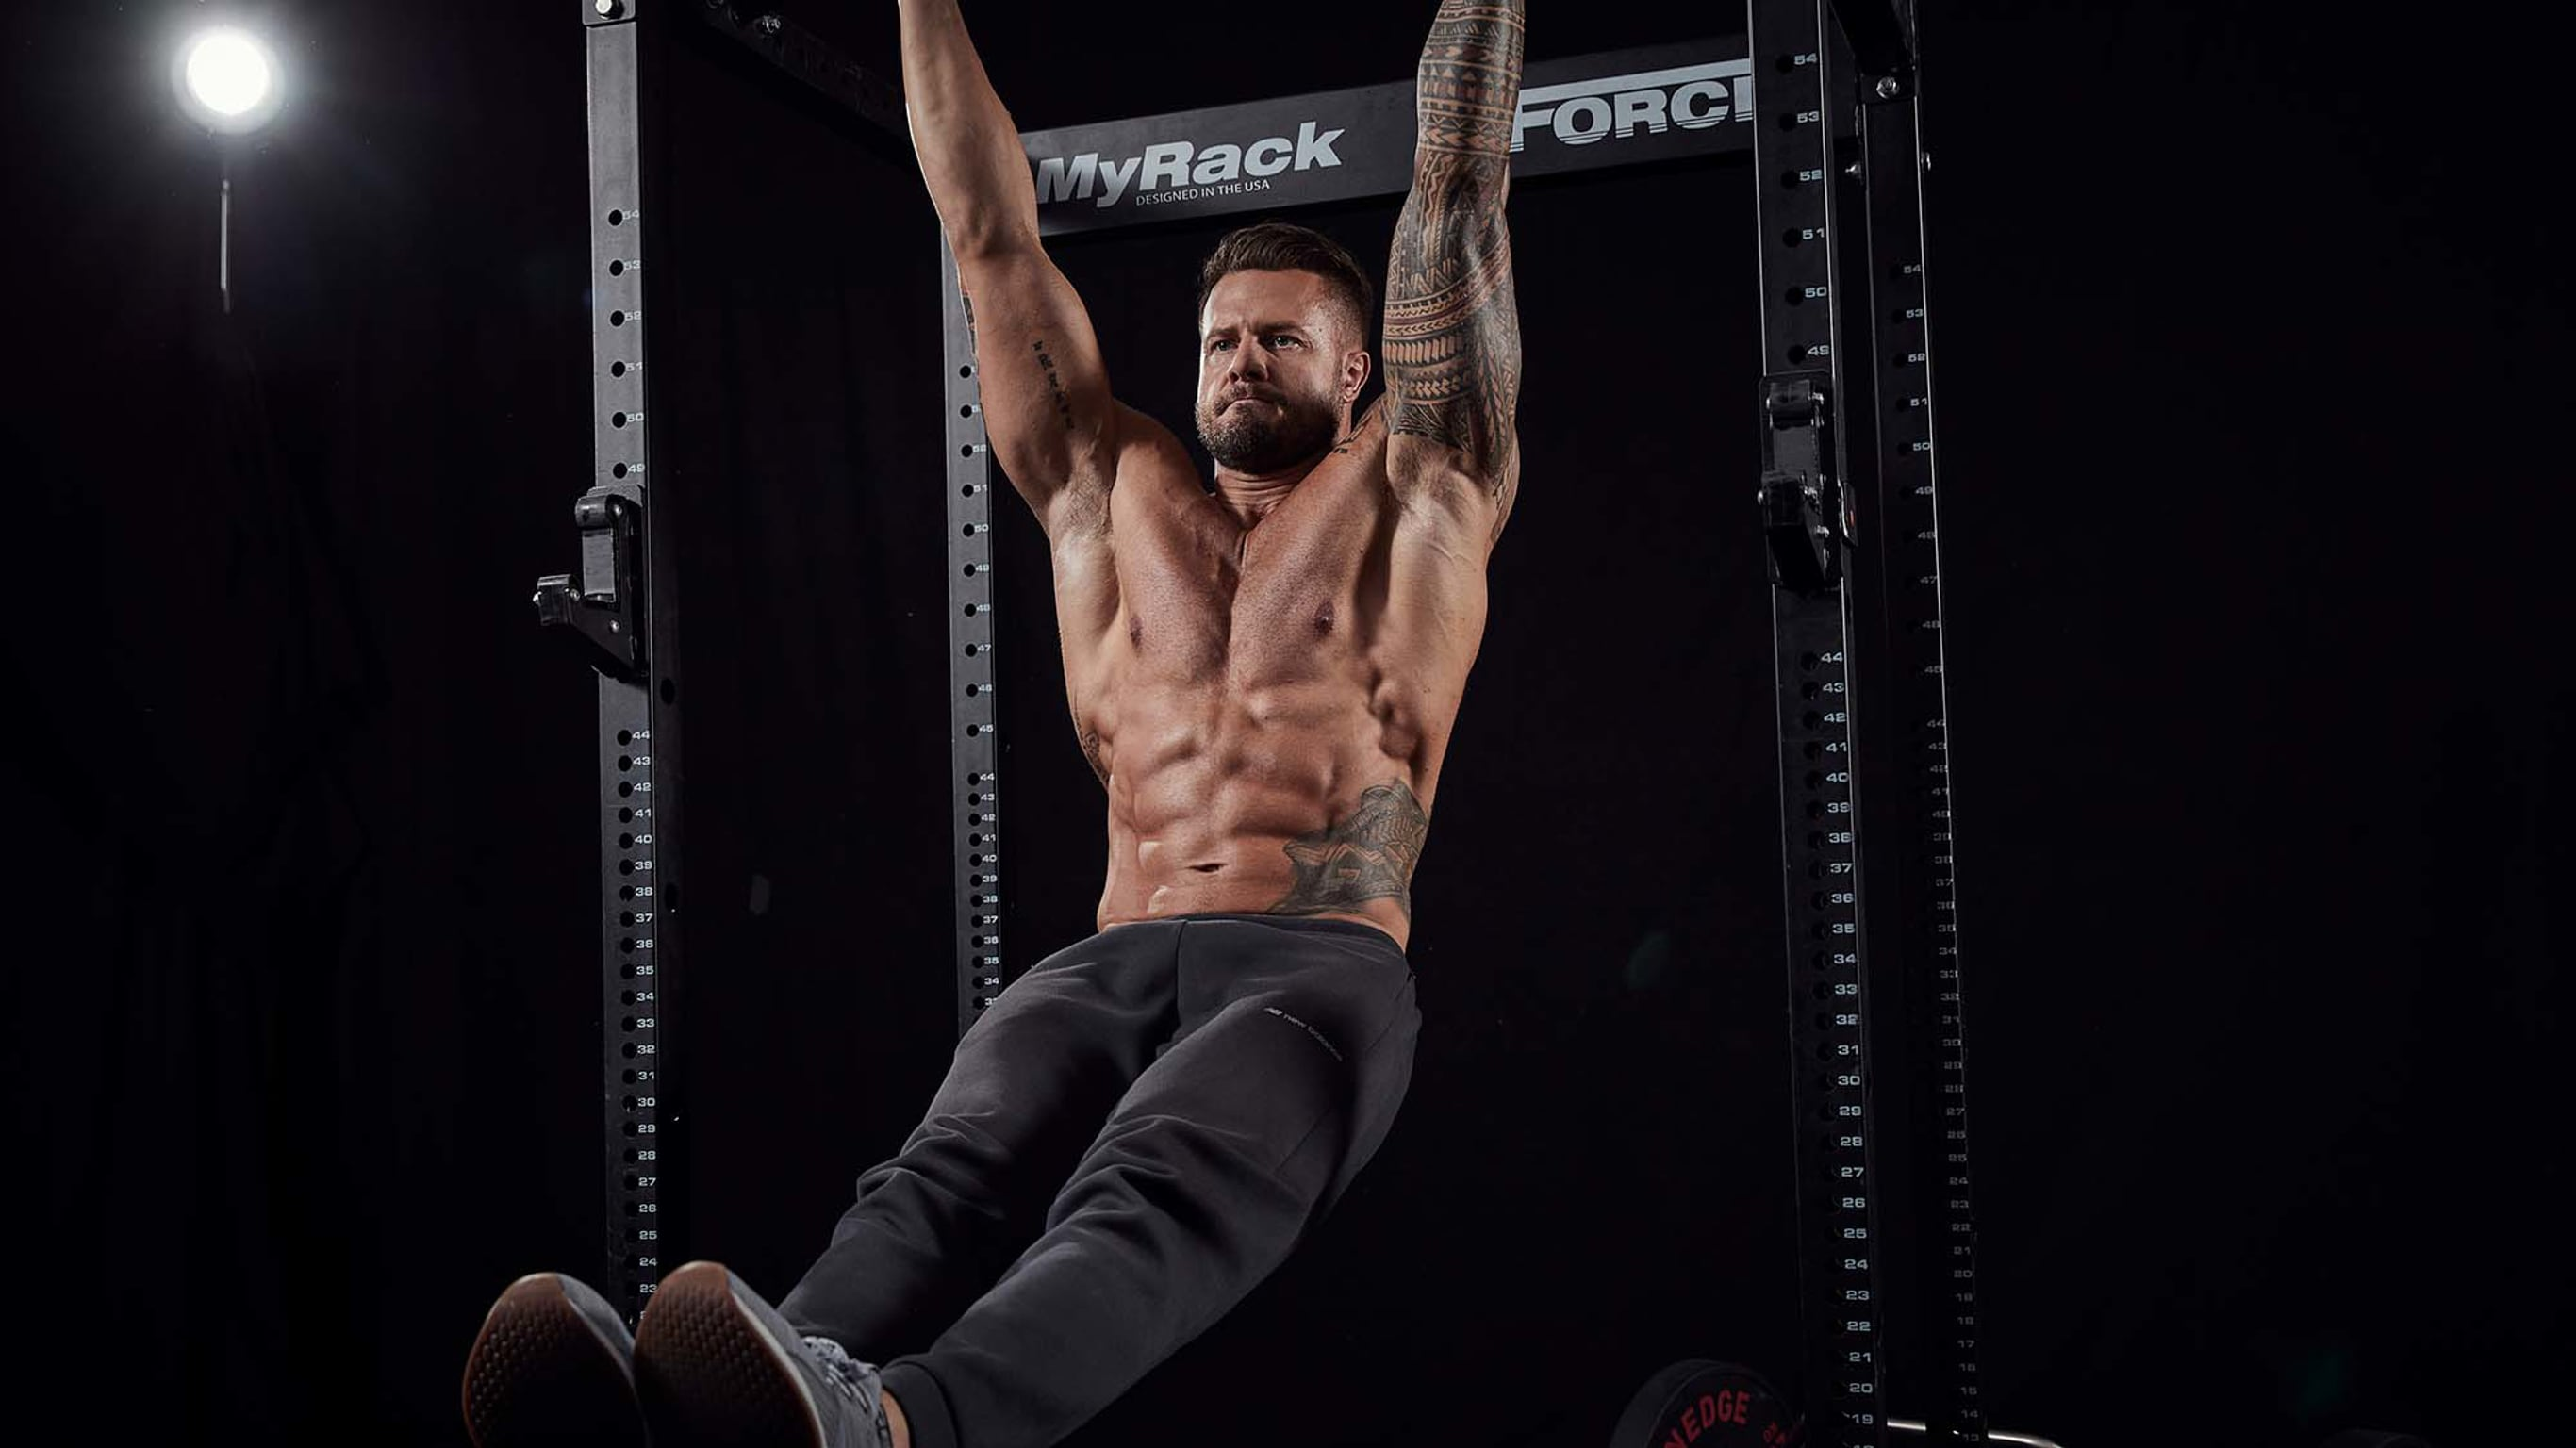 A shirtless, muscular man with visible abs hanging from a pull-up bar.